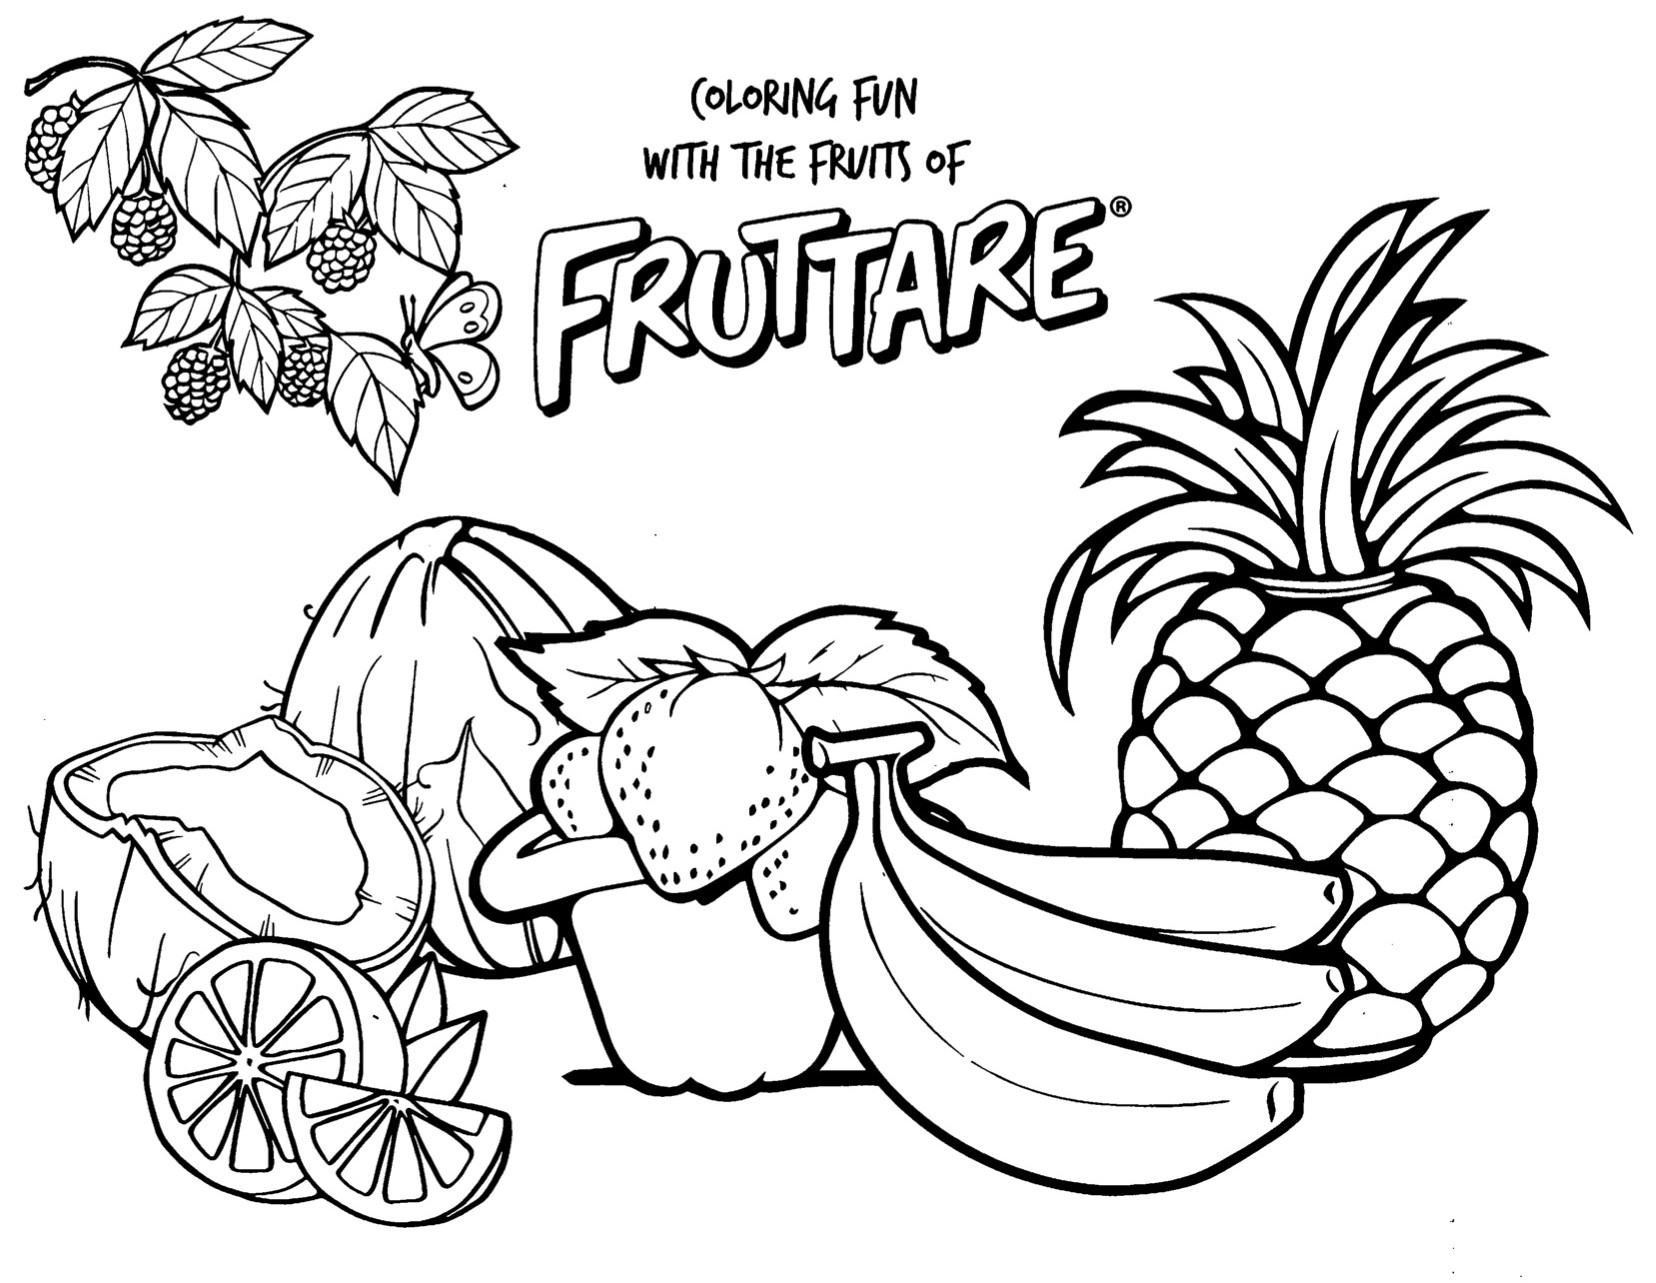 banana coloring page - 5 fun fruit activities for kids and families